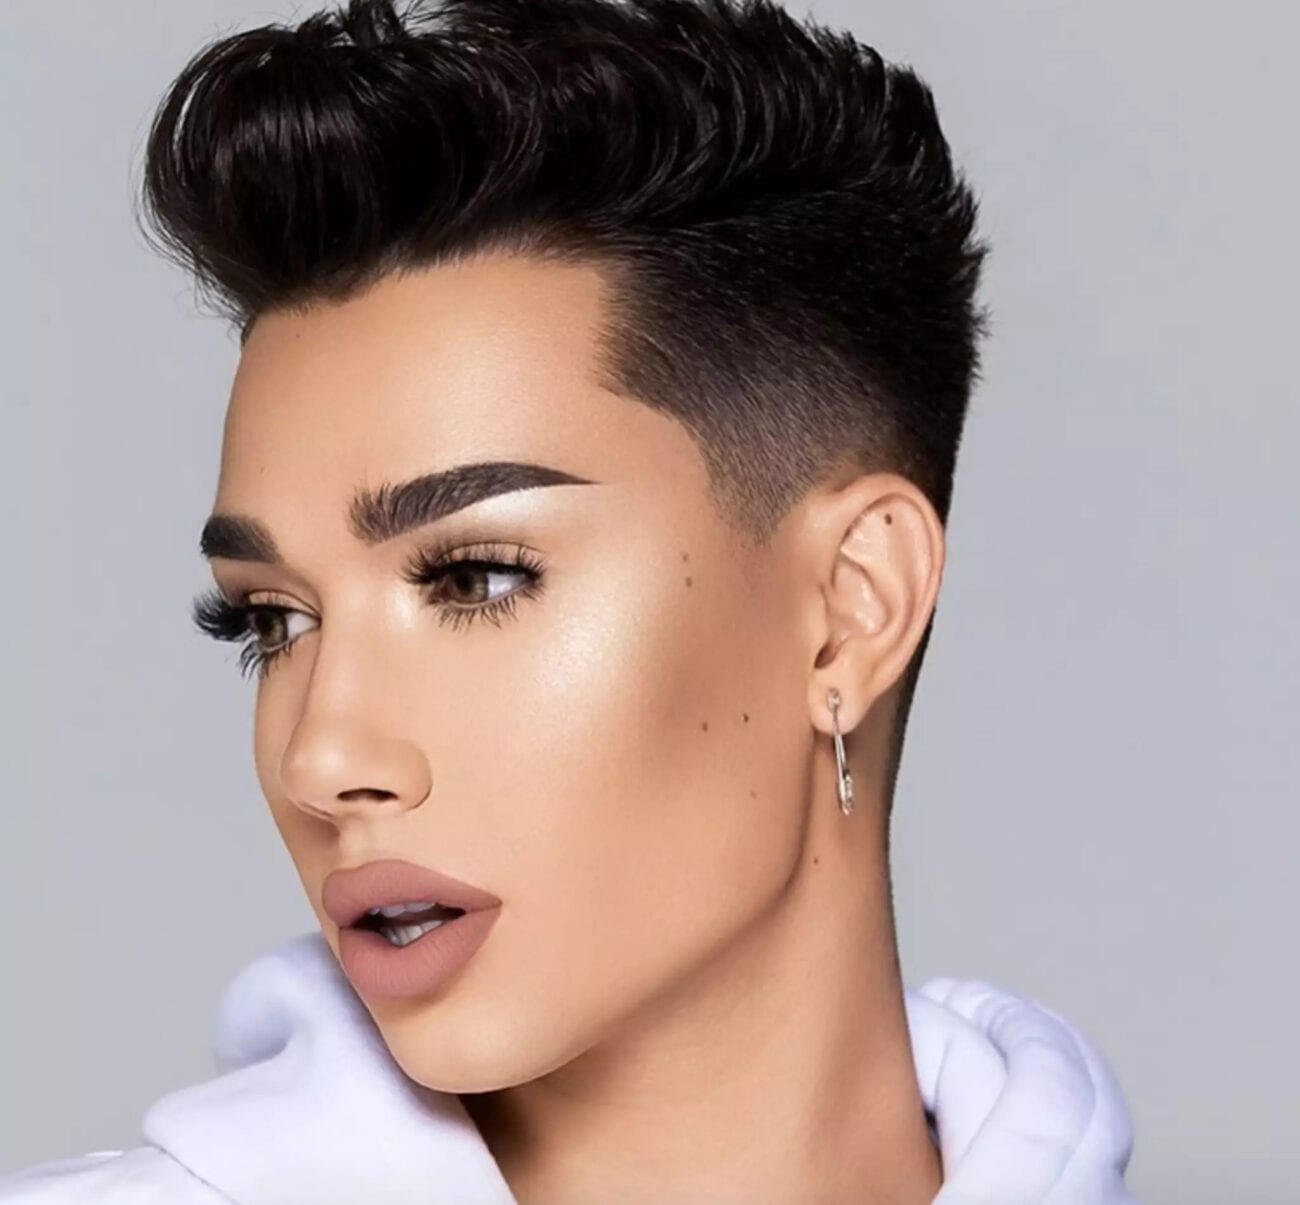 James Charles is known for getting into online drama. Recently he subtweeted Alicia Keys. Let's look at all the times he's been shady on Twitter.